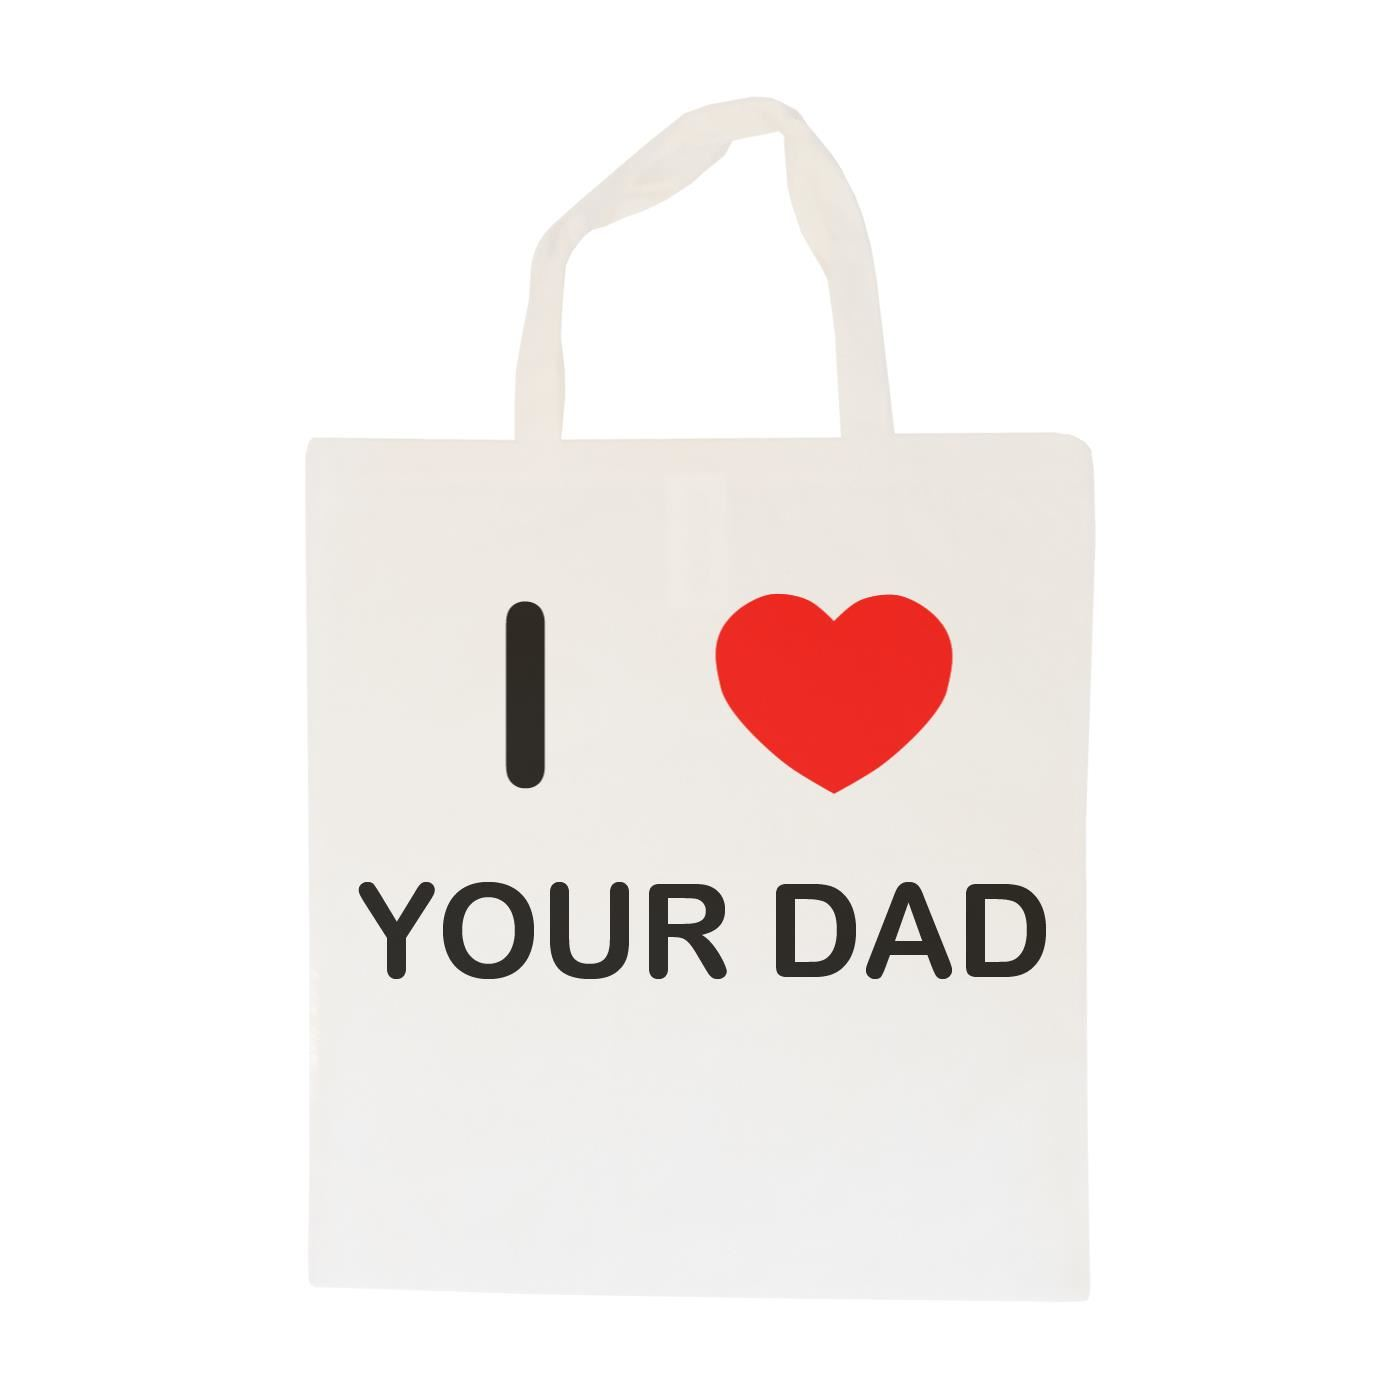 I Love Your Dad - Cotton Bag | Size choice Tote, Shopper or Sling